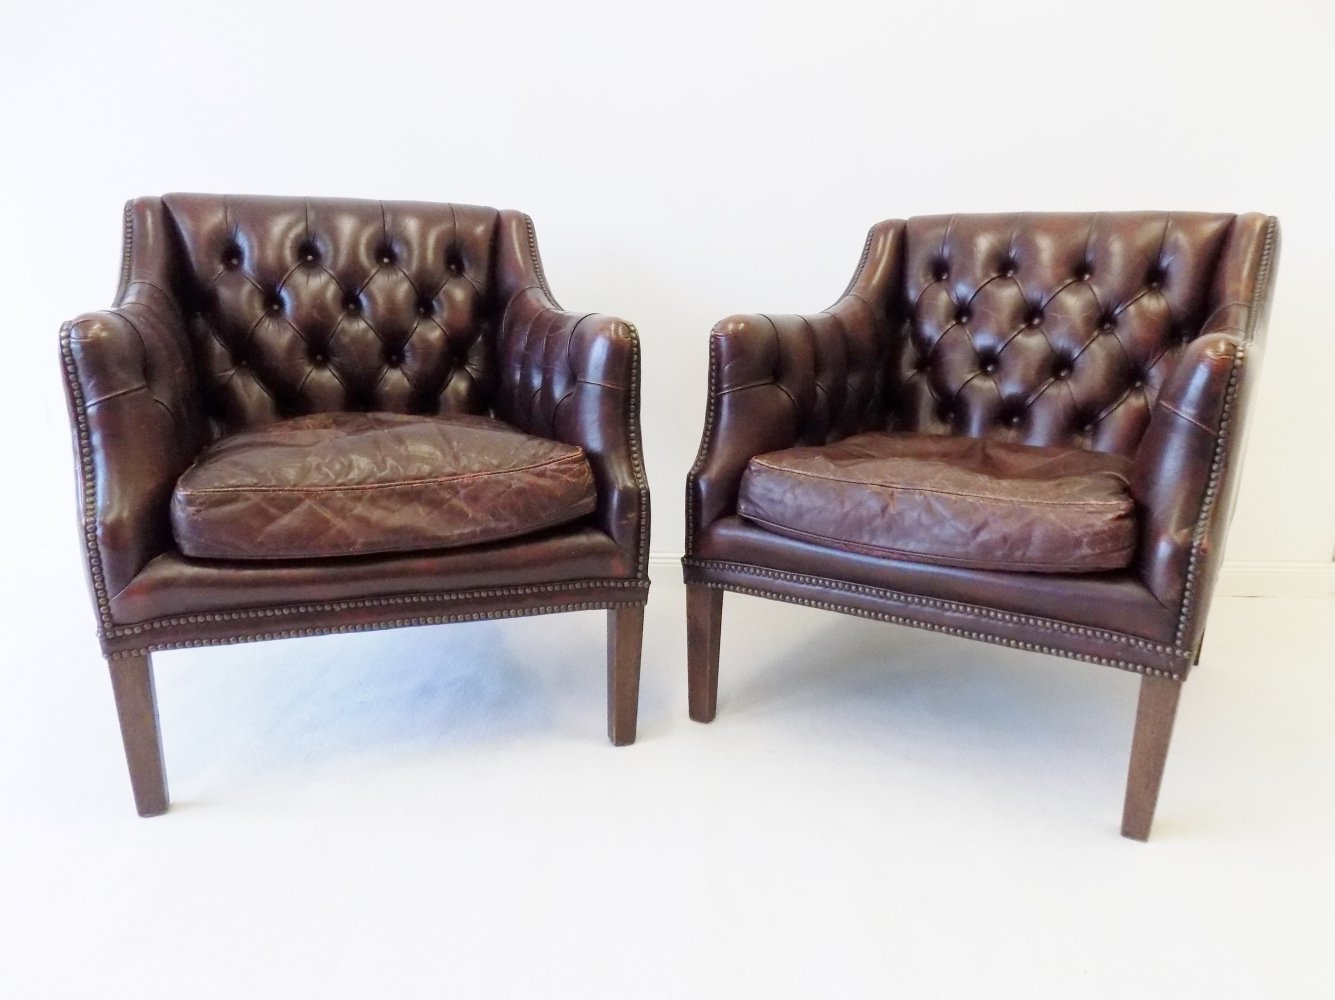 Pair of Millbrook Chesterfield Club Chairs, 1960s